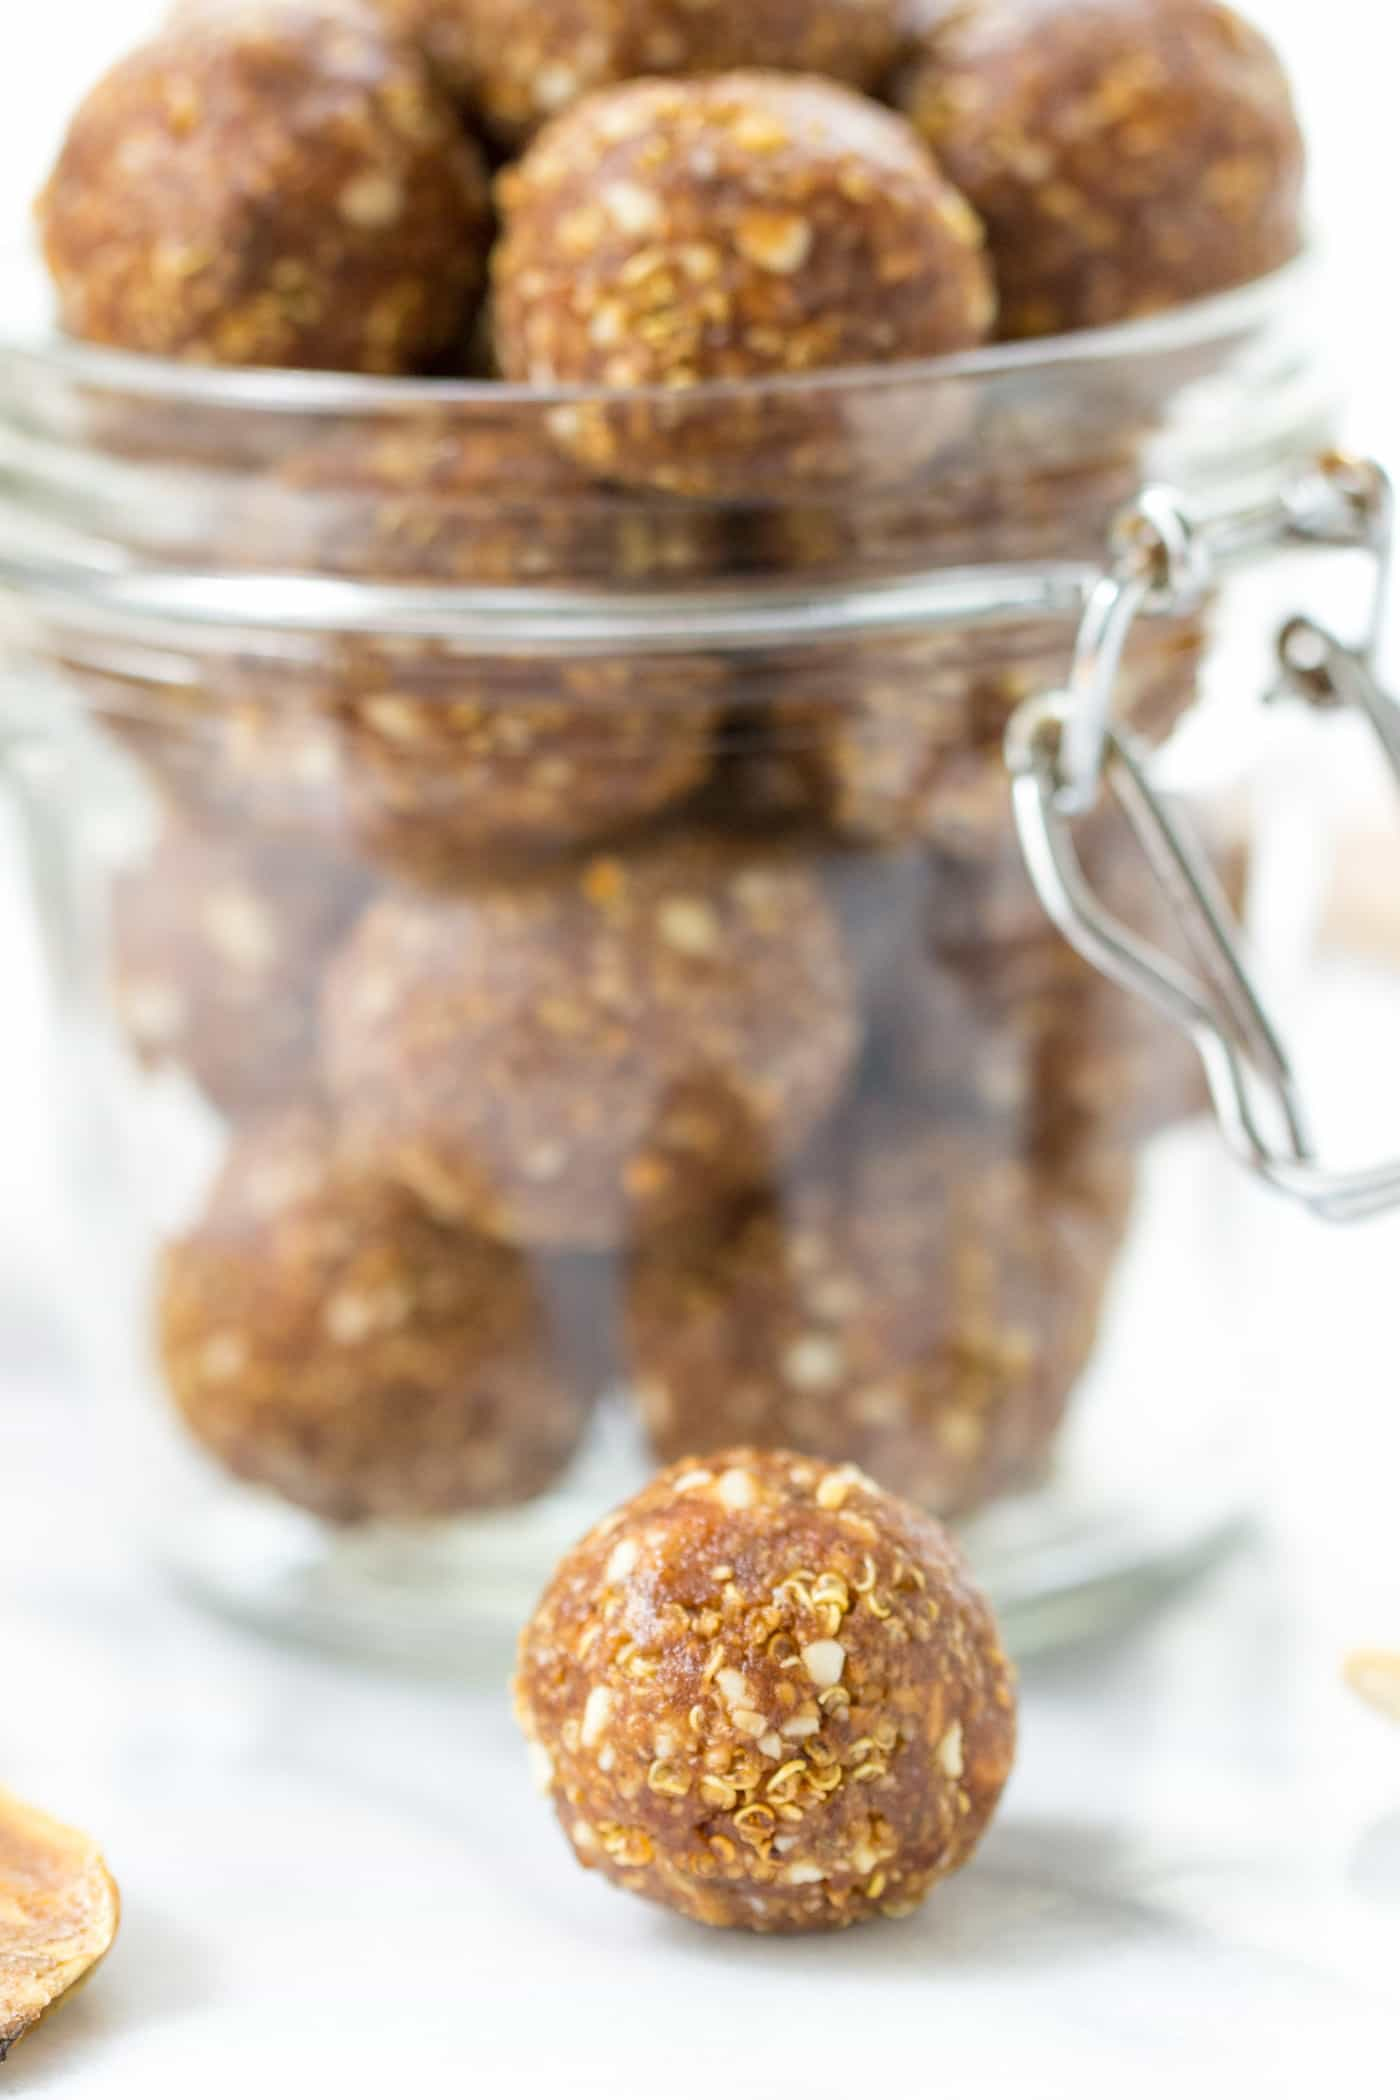 These HEALTHY Banana Peanut Butter Energy Bites make the perfect on-the-go snack -- easy to make, packed with healthy ingredients and SO FLAVORFUL!